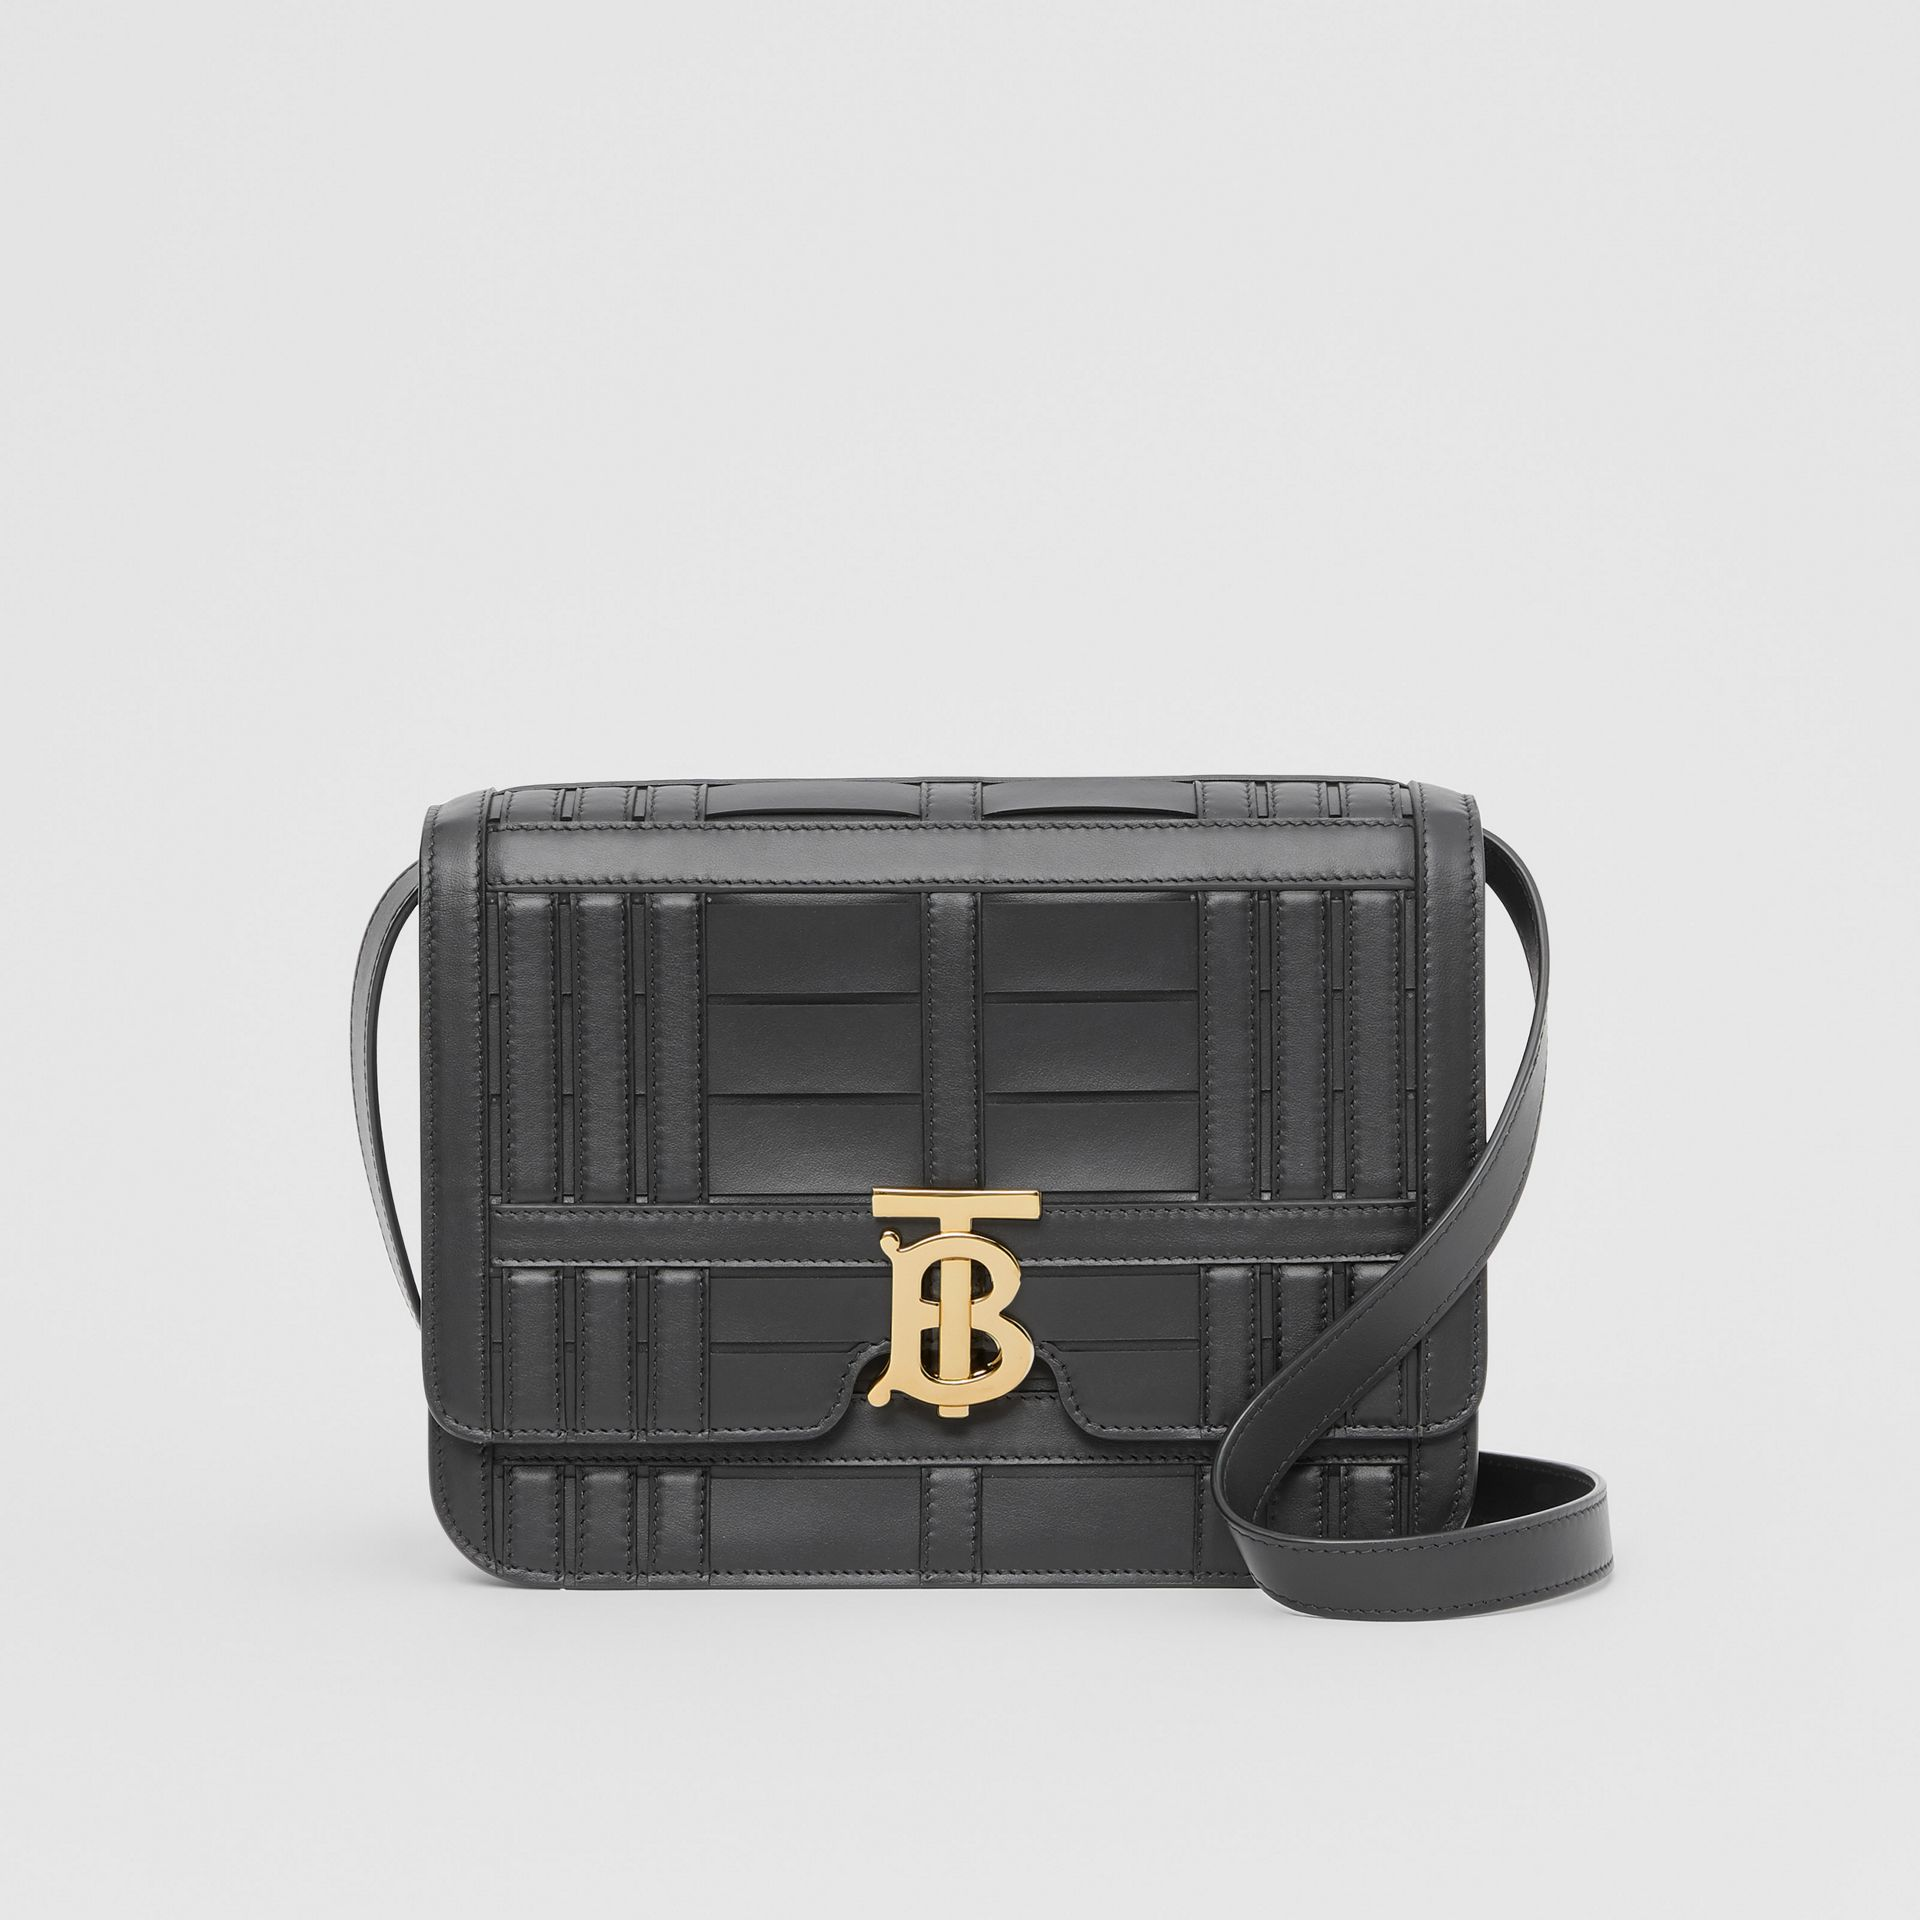 Medium Woven Leather TB Bag in Black - Women | Burberry Hong Kong S.A.R. - gallery image 0